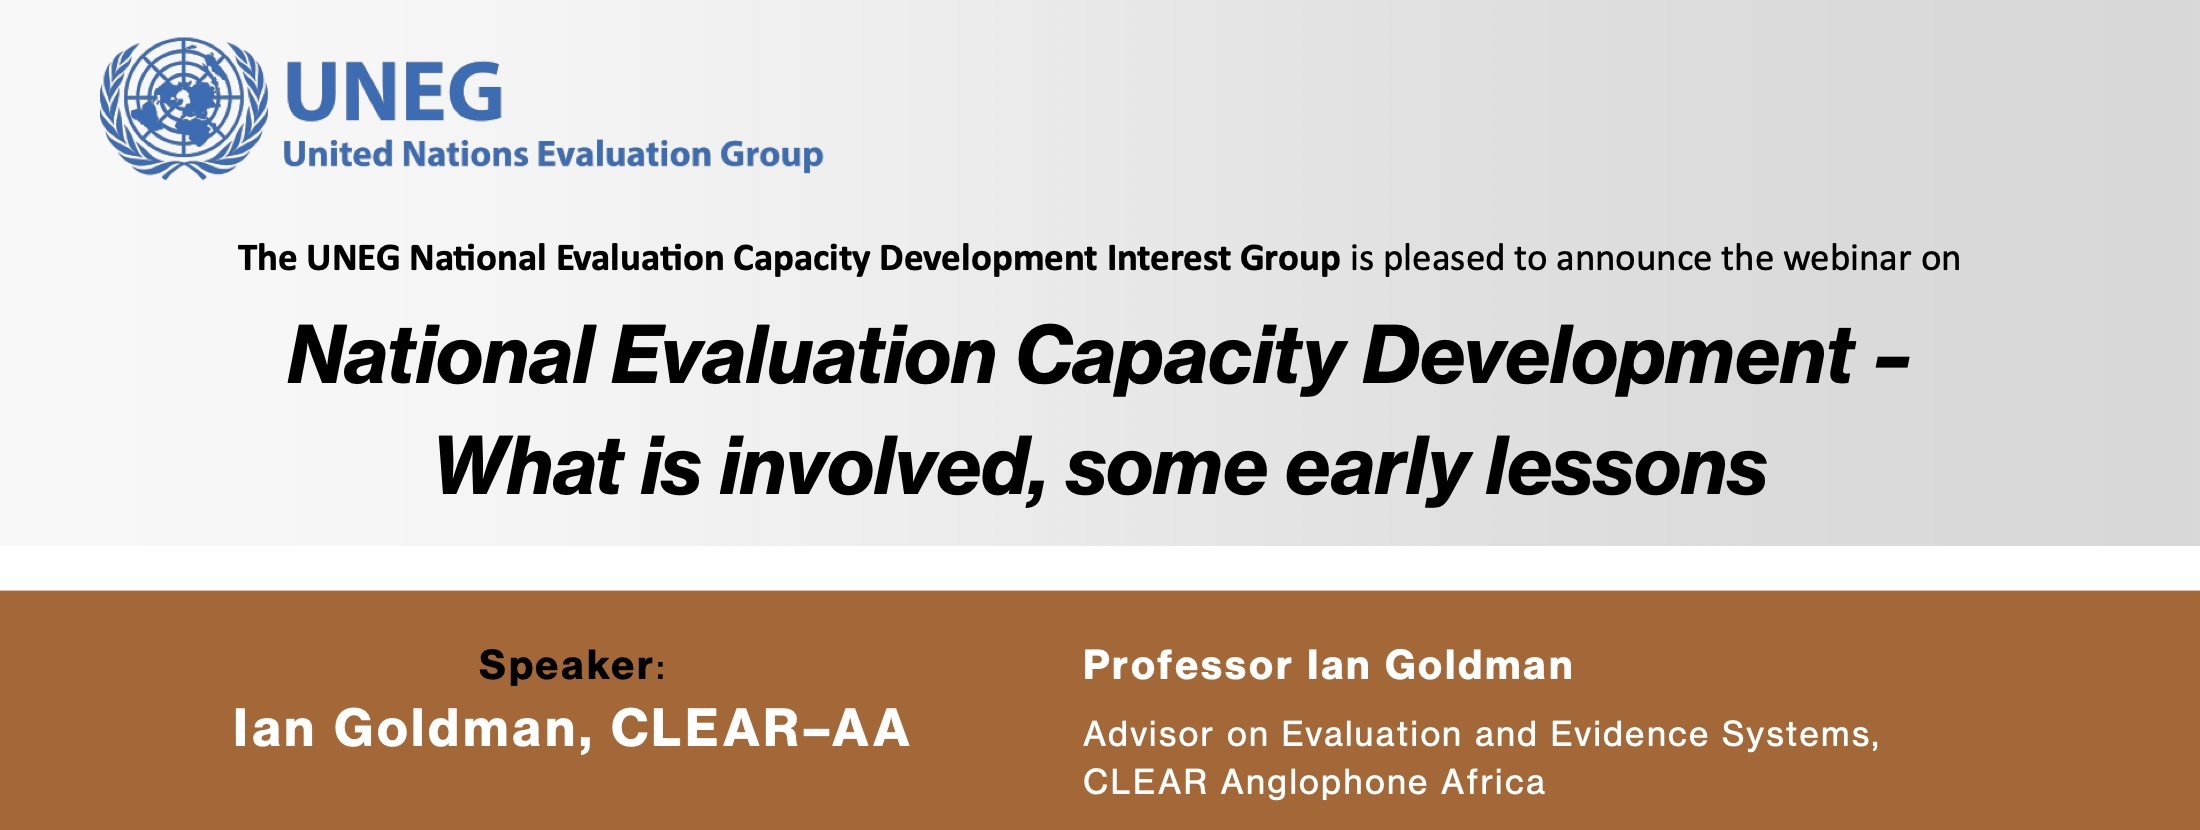 Webinar: National Evaluation Capacity Development – What is involved, some early lessons